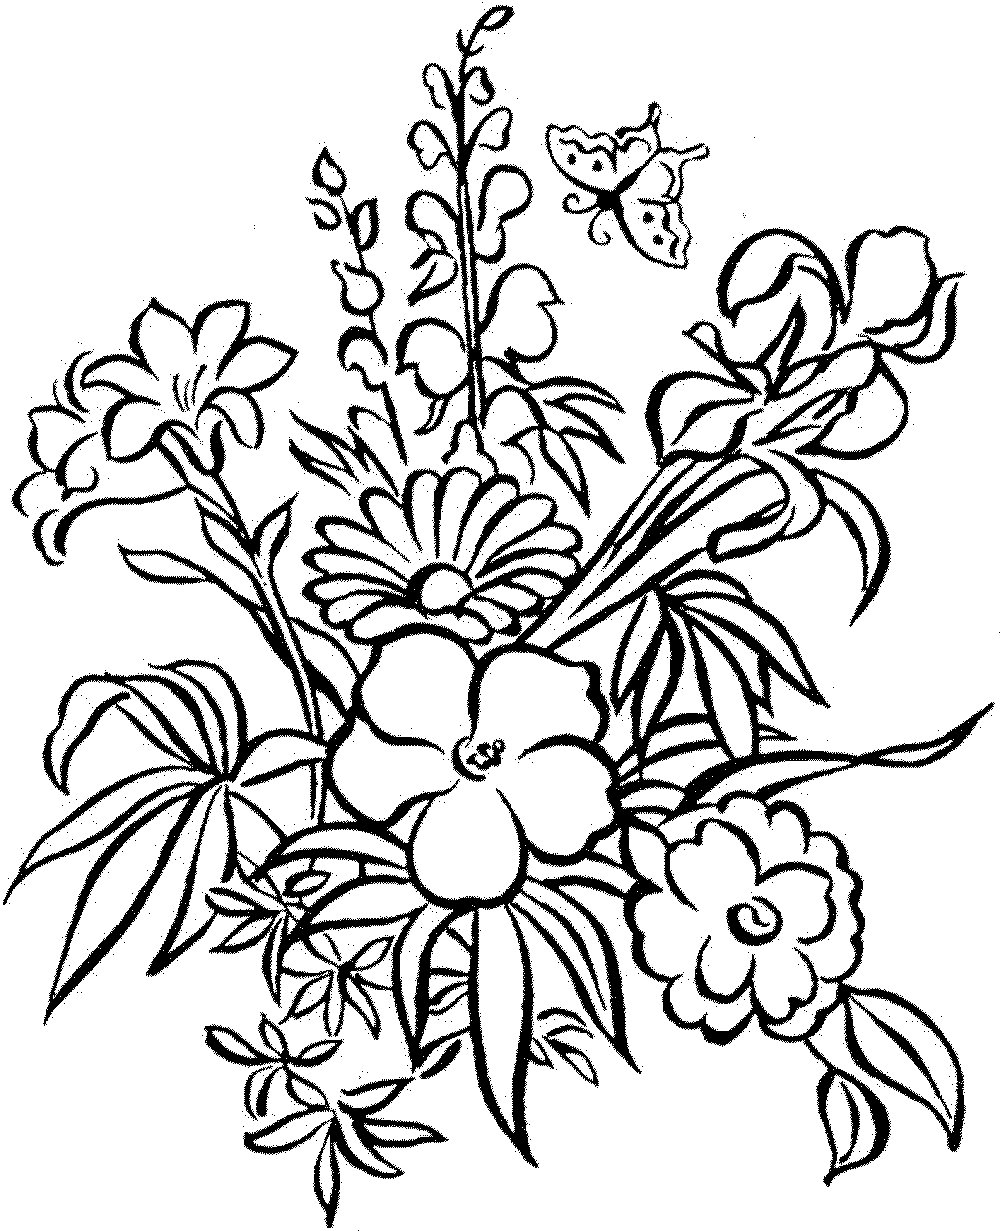 coloring page of flower detailed flower coloring pages to download and print for free page of flower coloring